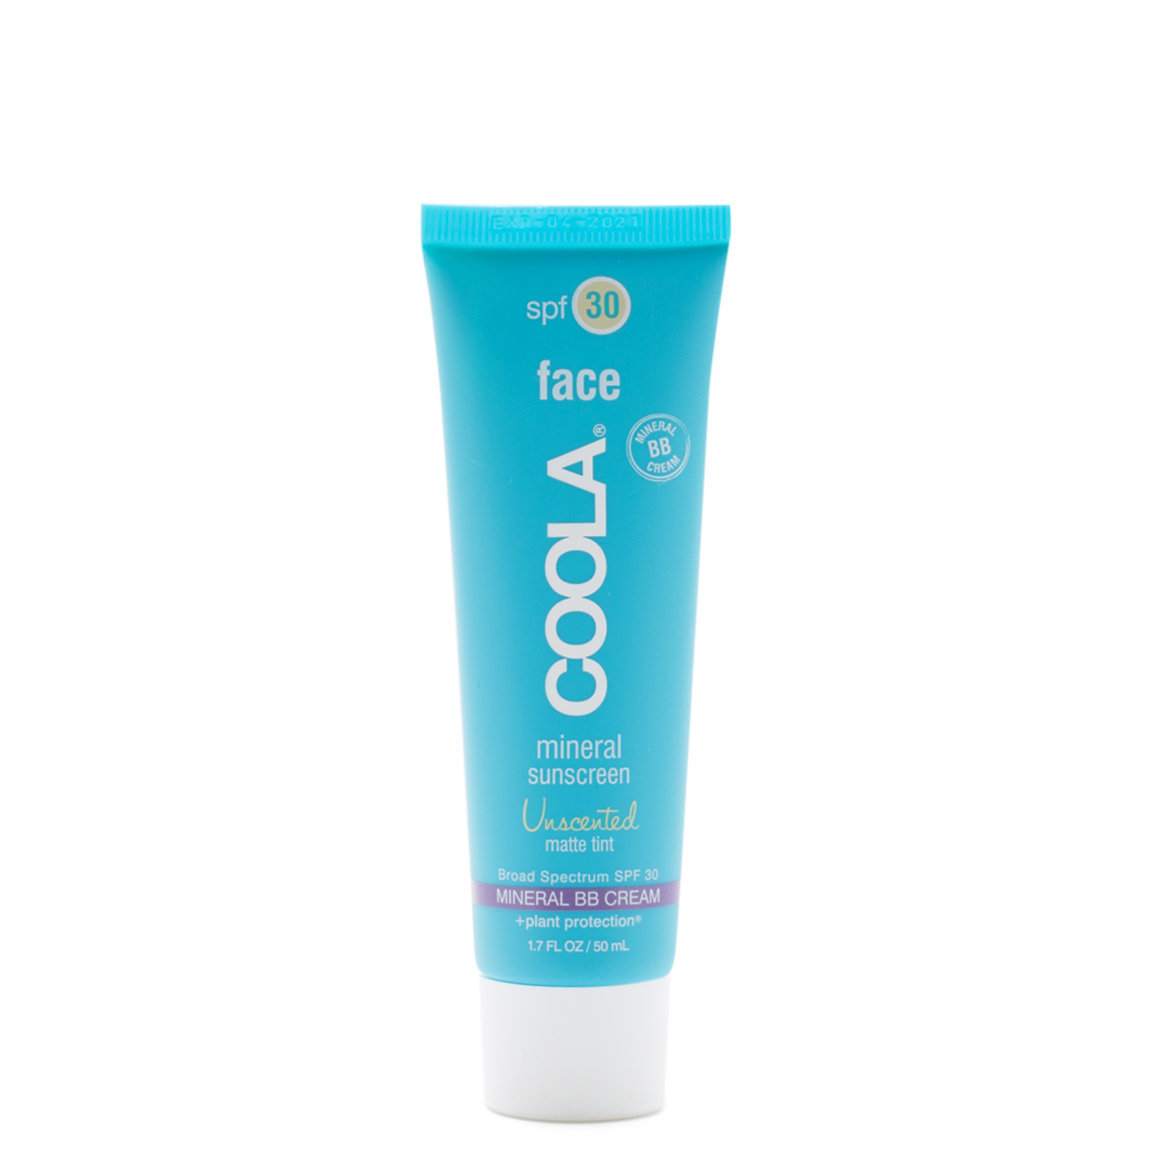 COOLA Mineral Face Sunscreen SPF 30 Unscented Matte Tint product swatch.